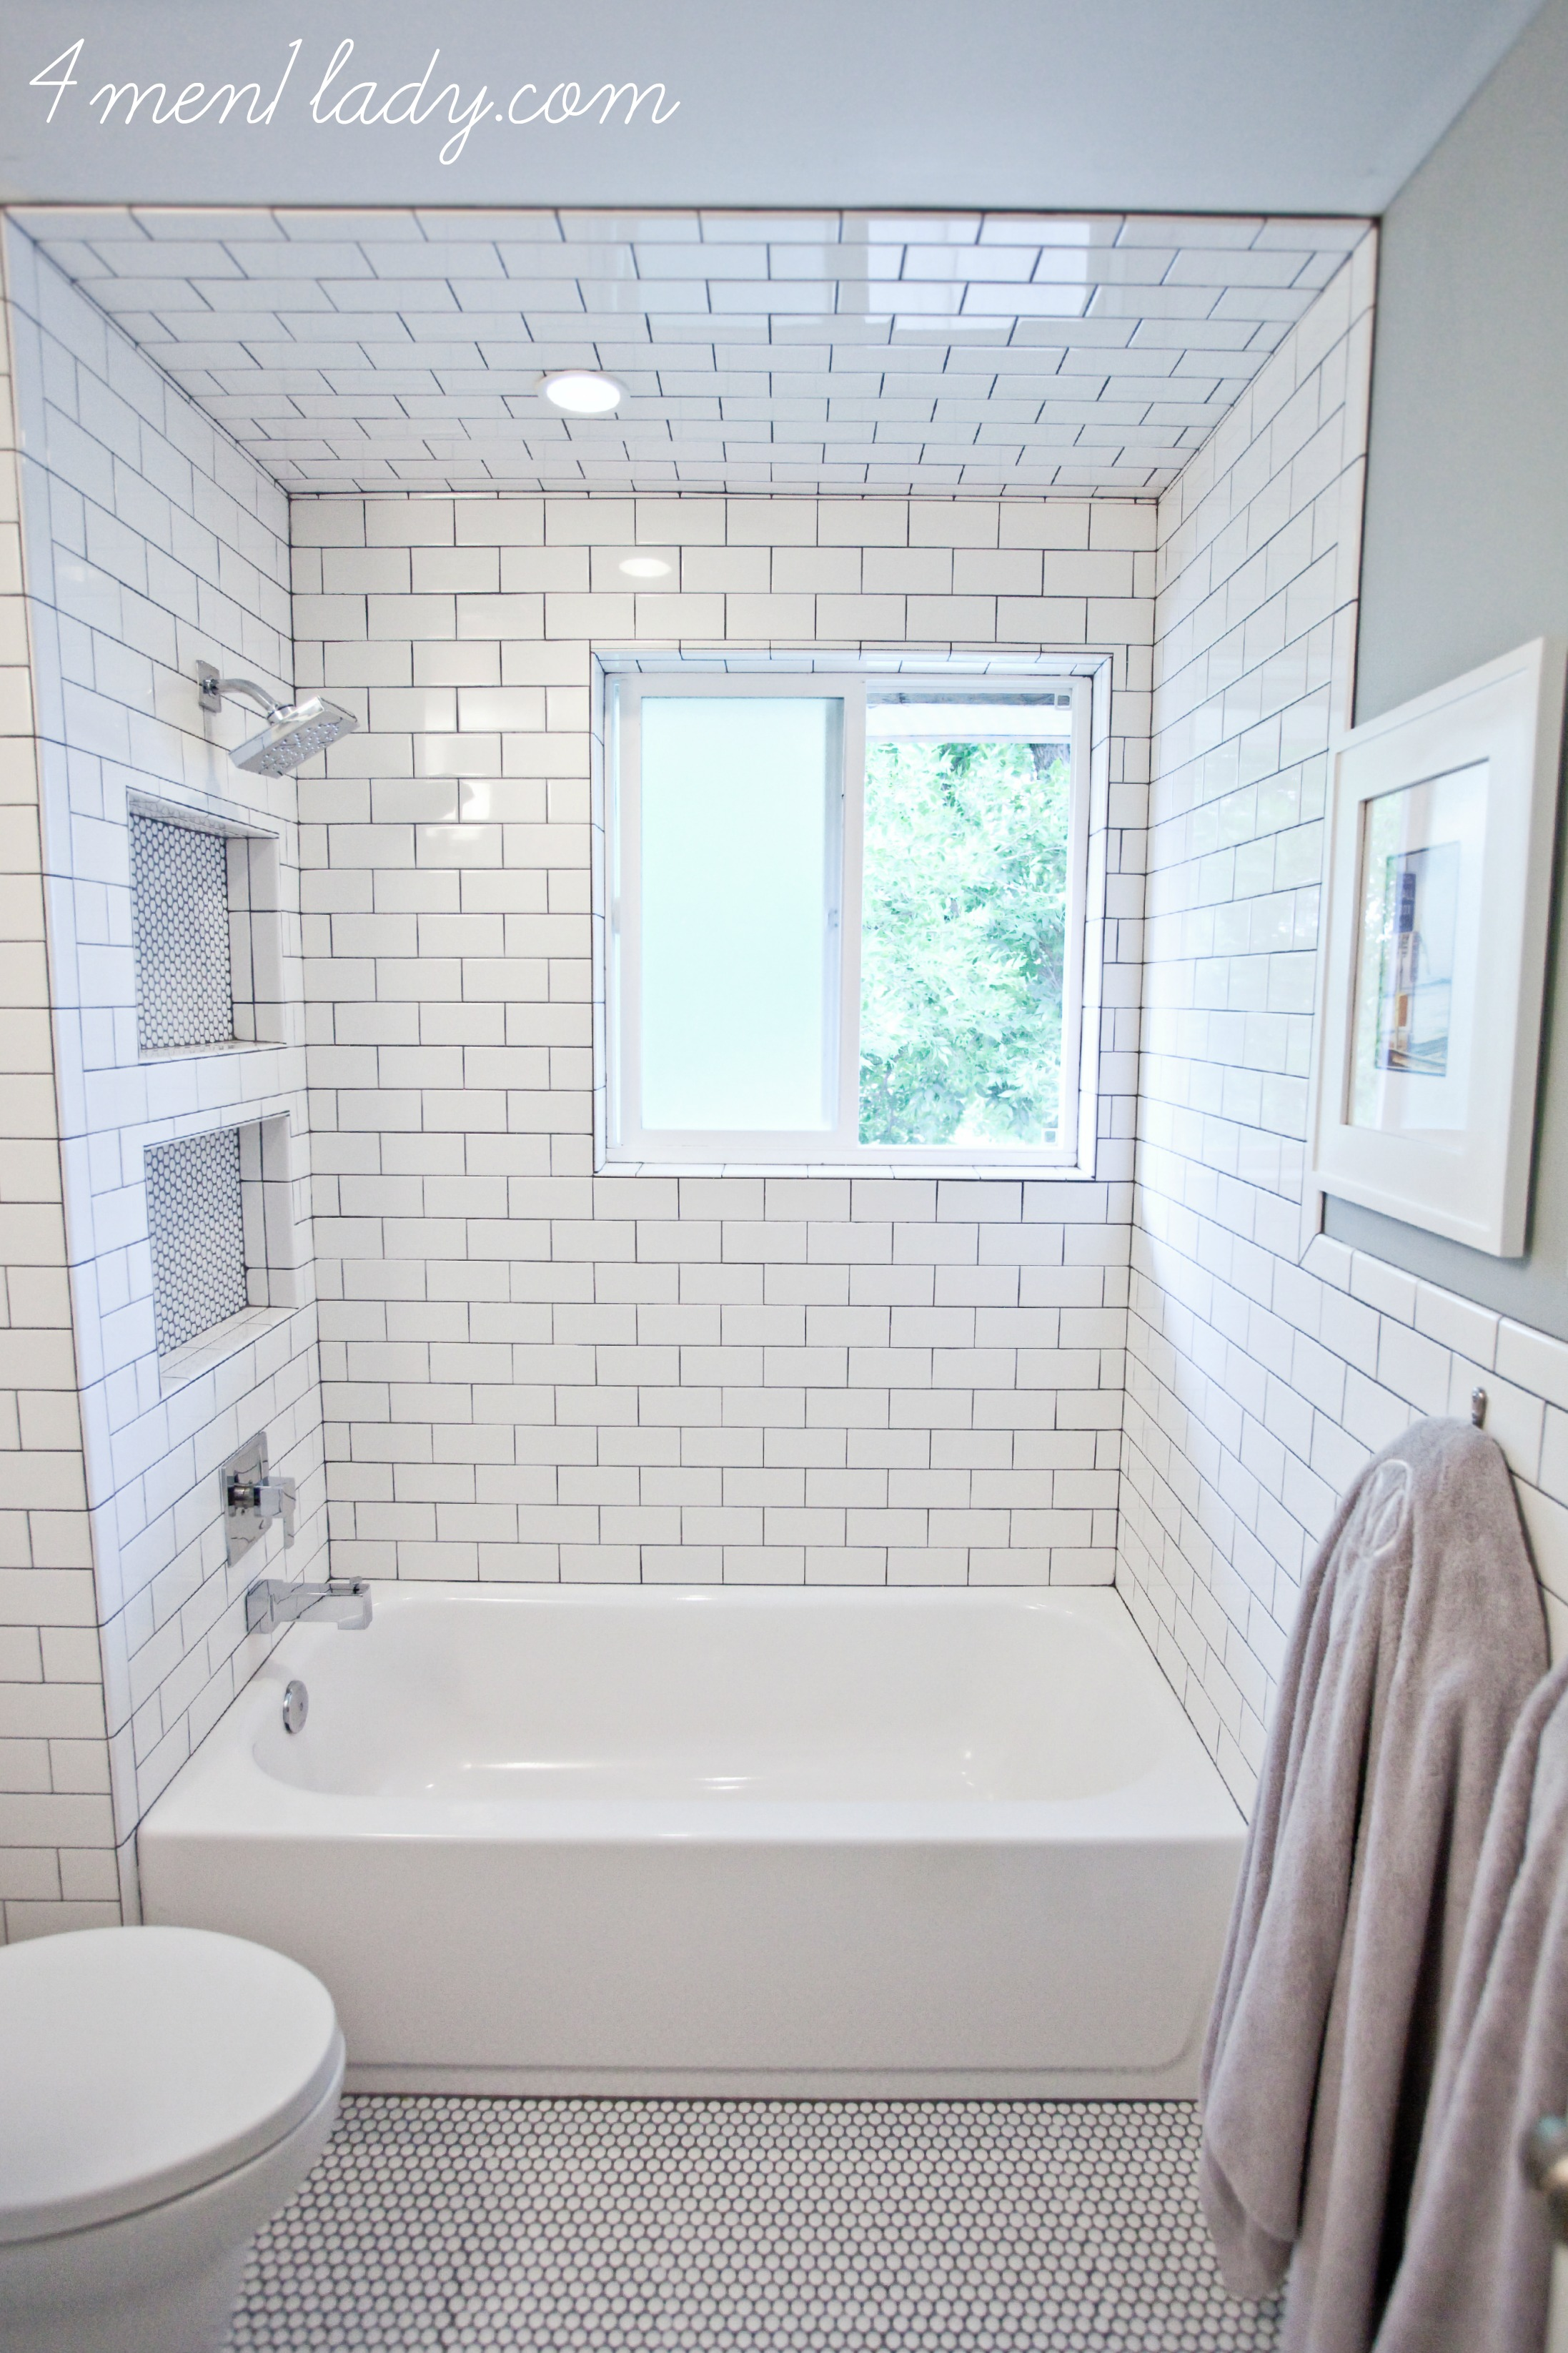 How To Install Tile Around A Bathroom Window - Round Designs